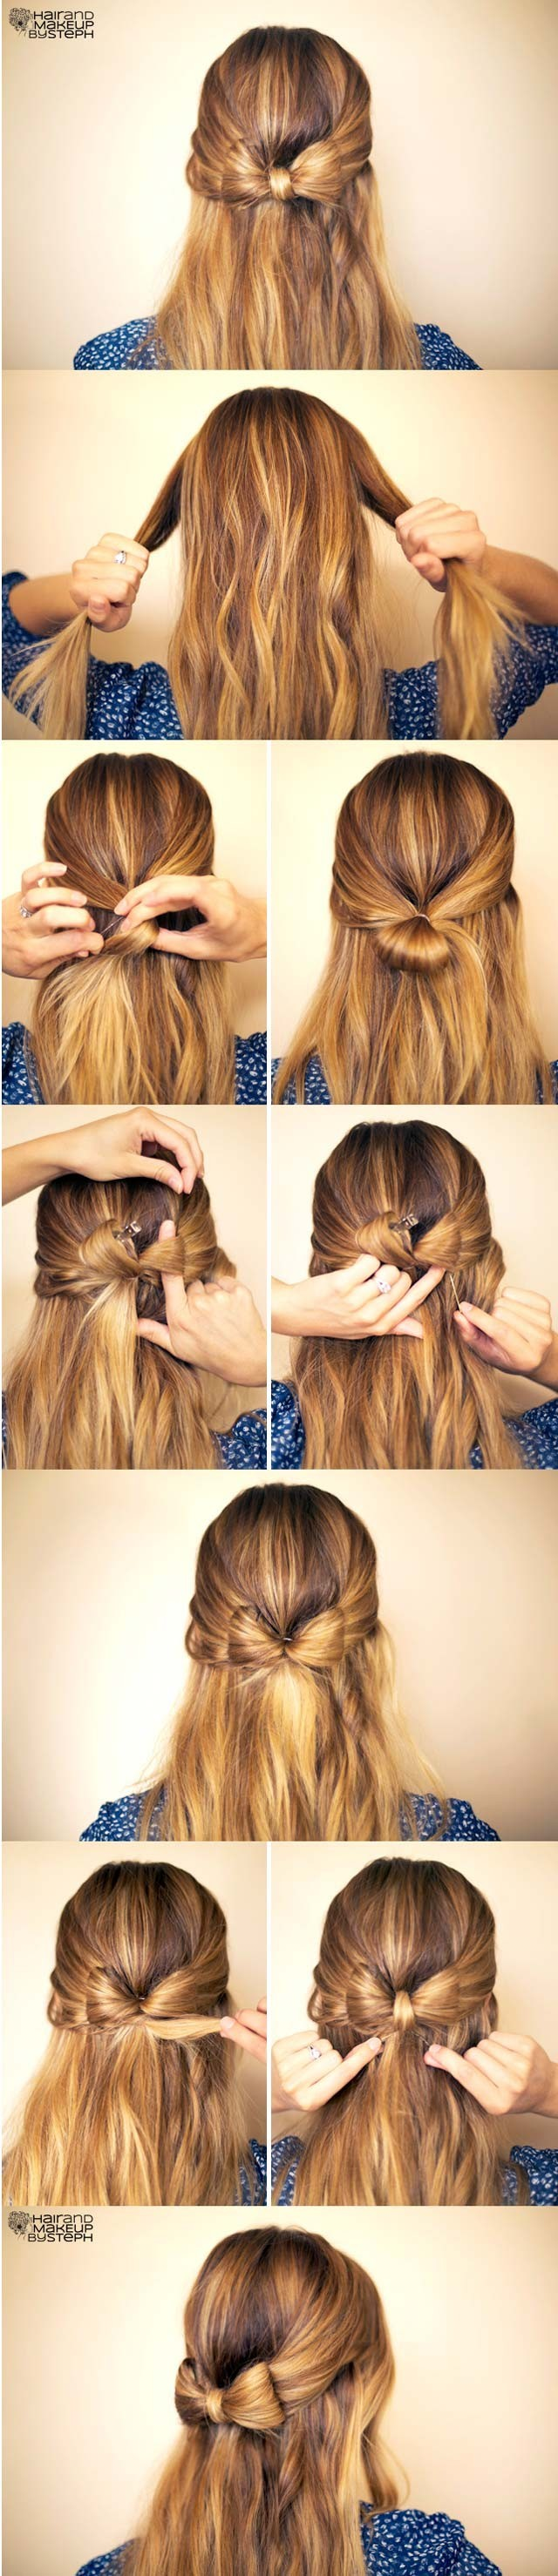 Cute hair bow hairstyle tutorial